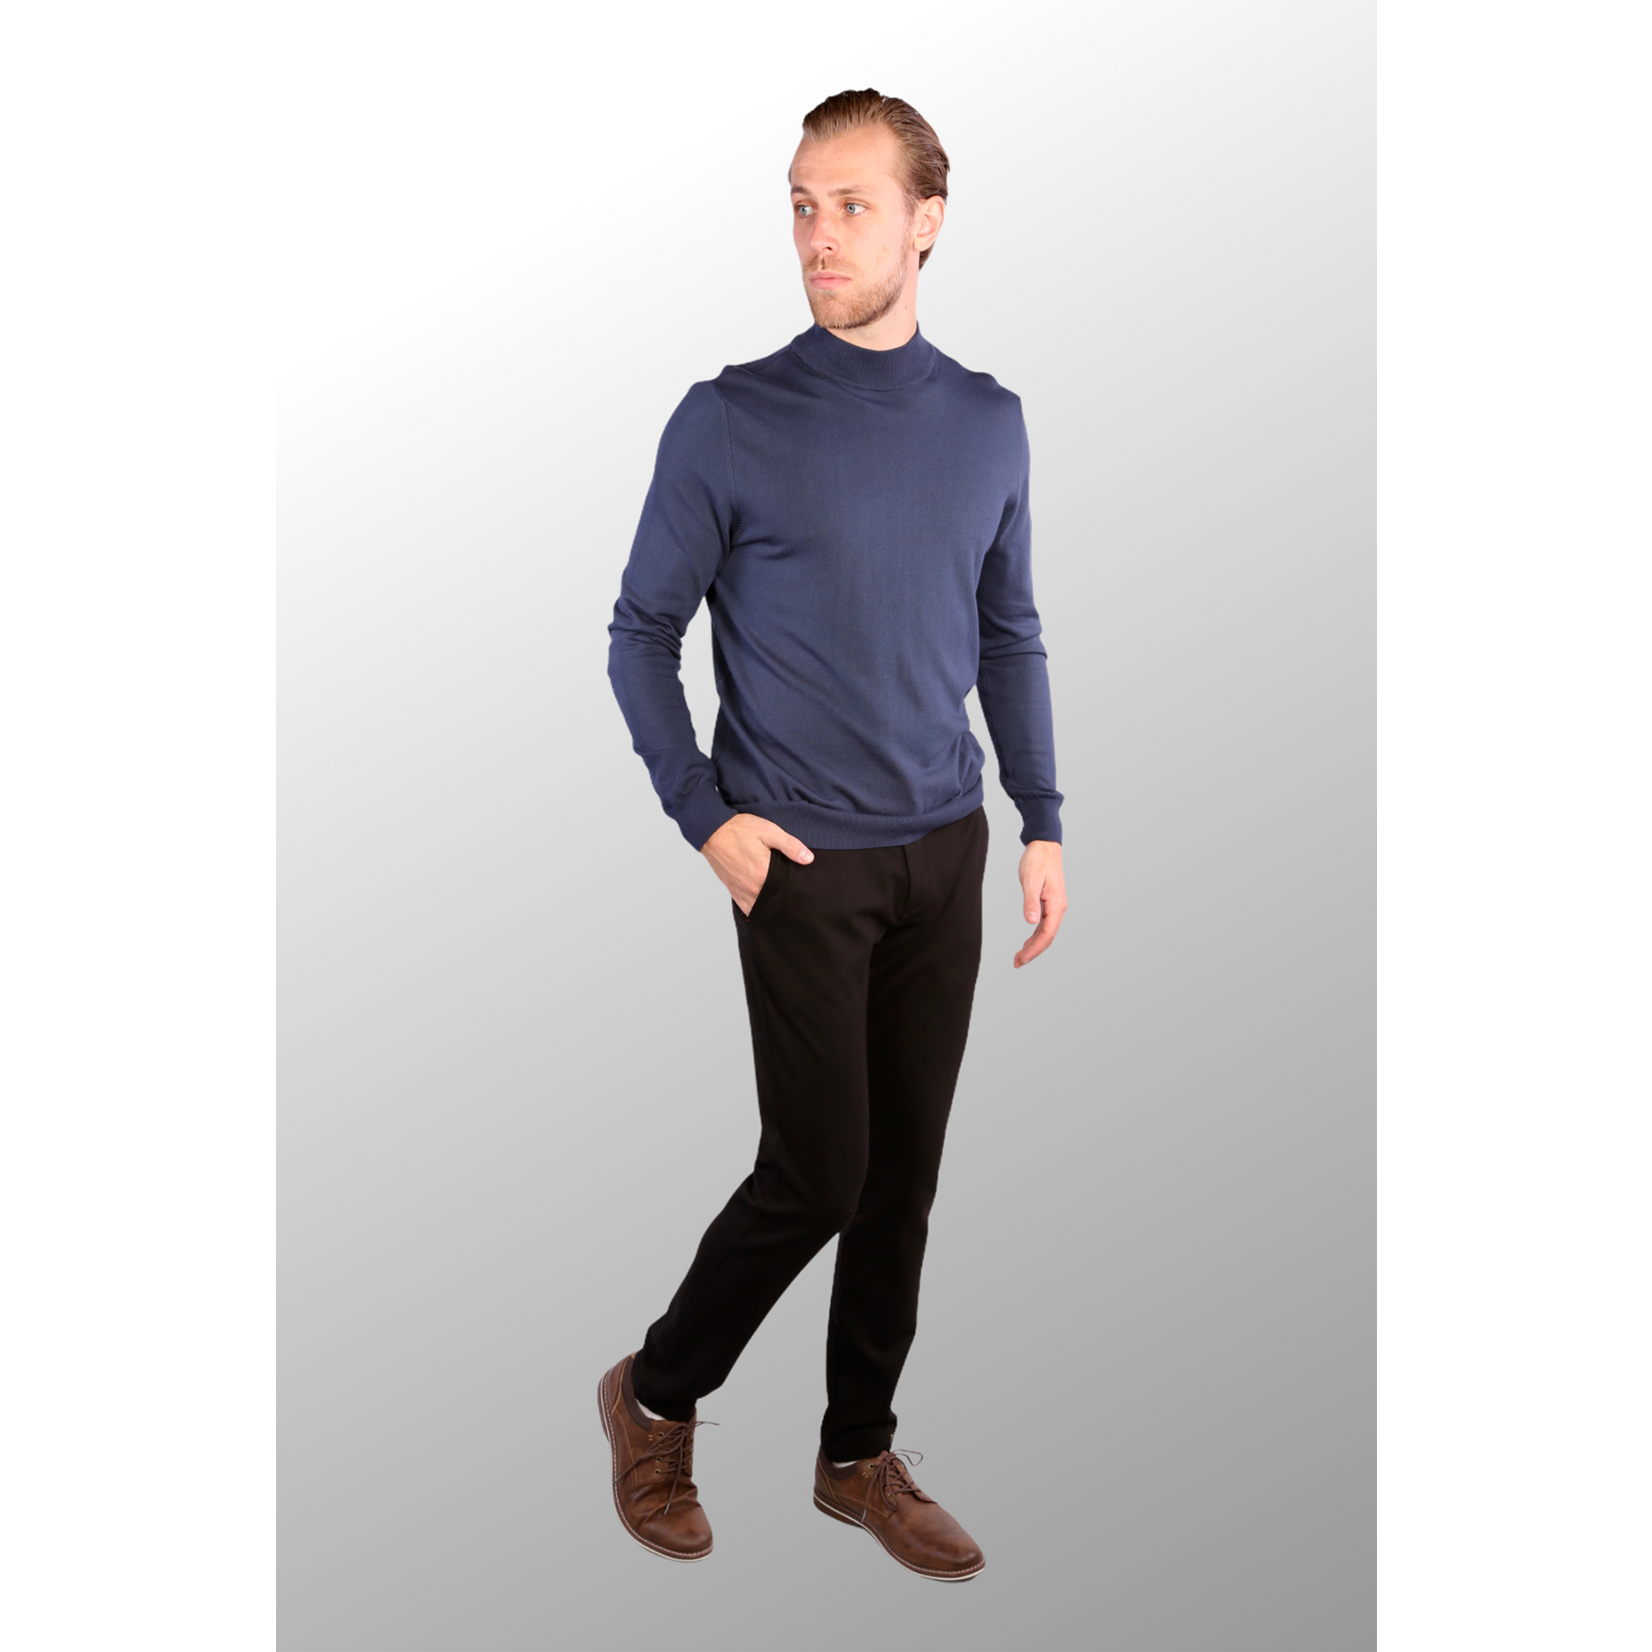 7 Downie St. 7 Downie St. Mock Neck Sweater - 2 Colors